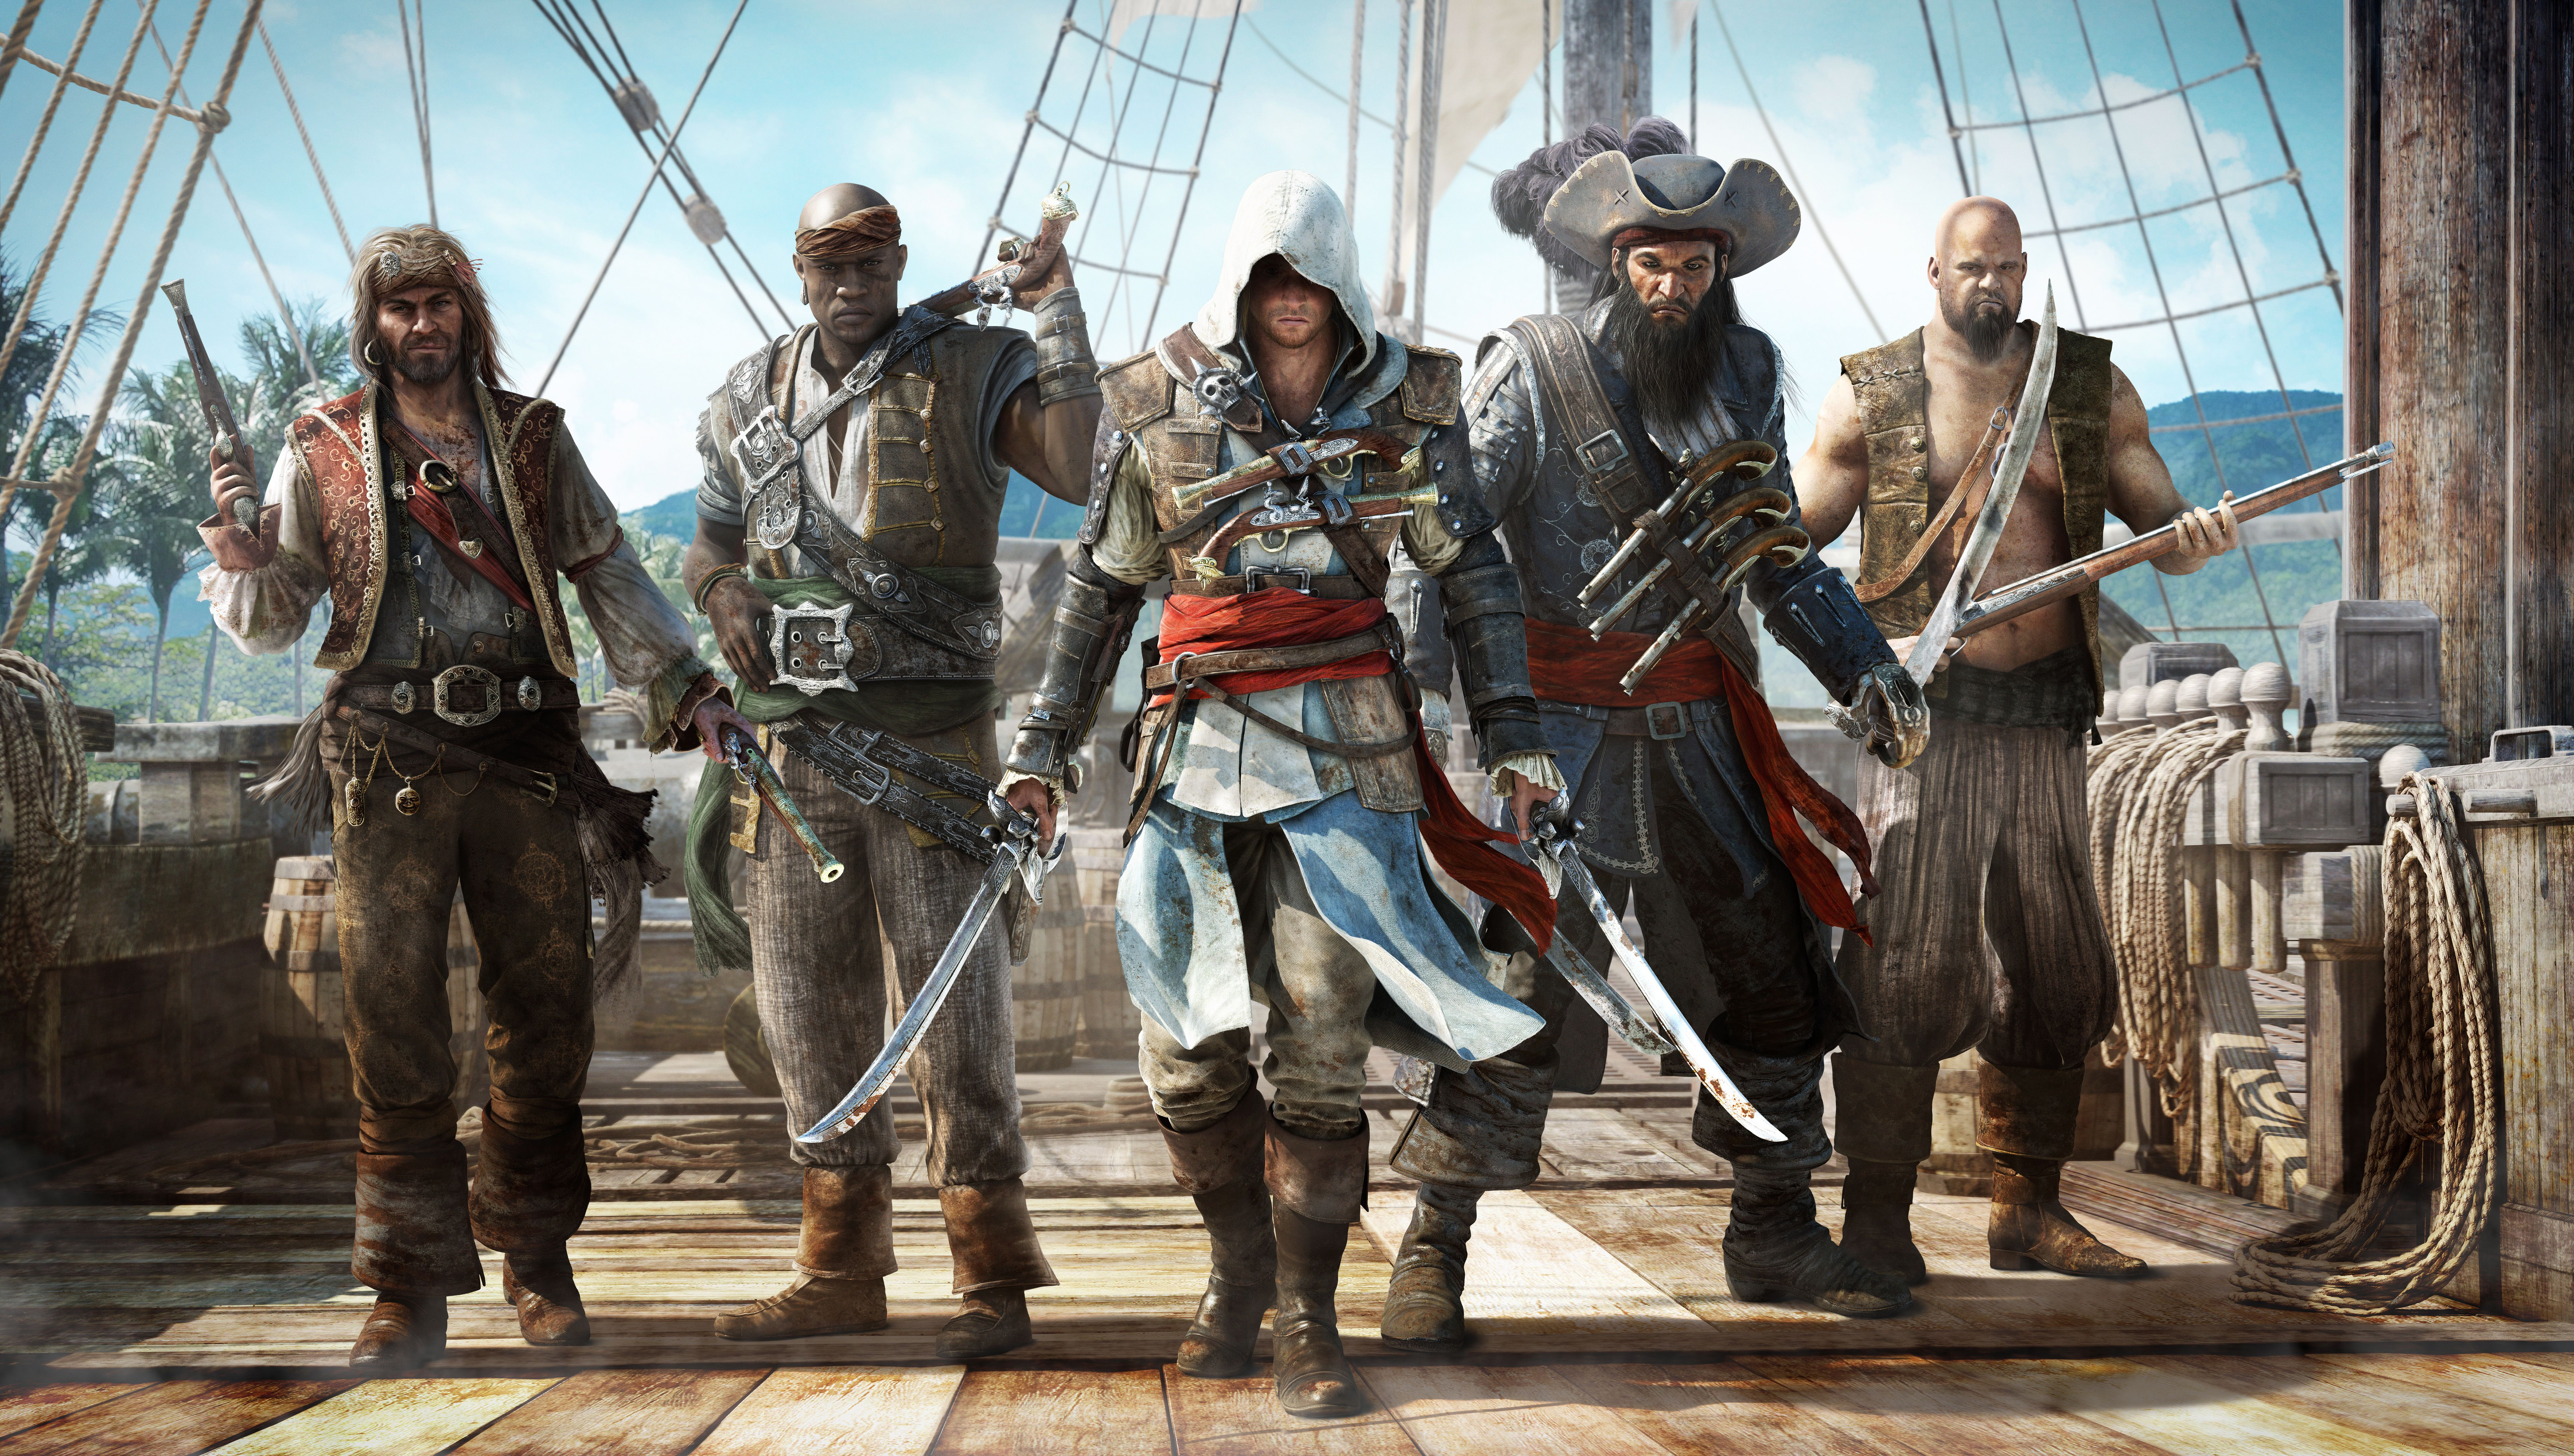 AC4 Wallpapers   Top AC4 Backgrounds   WallpaperAccess 8839x5000